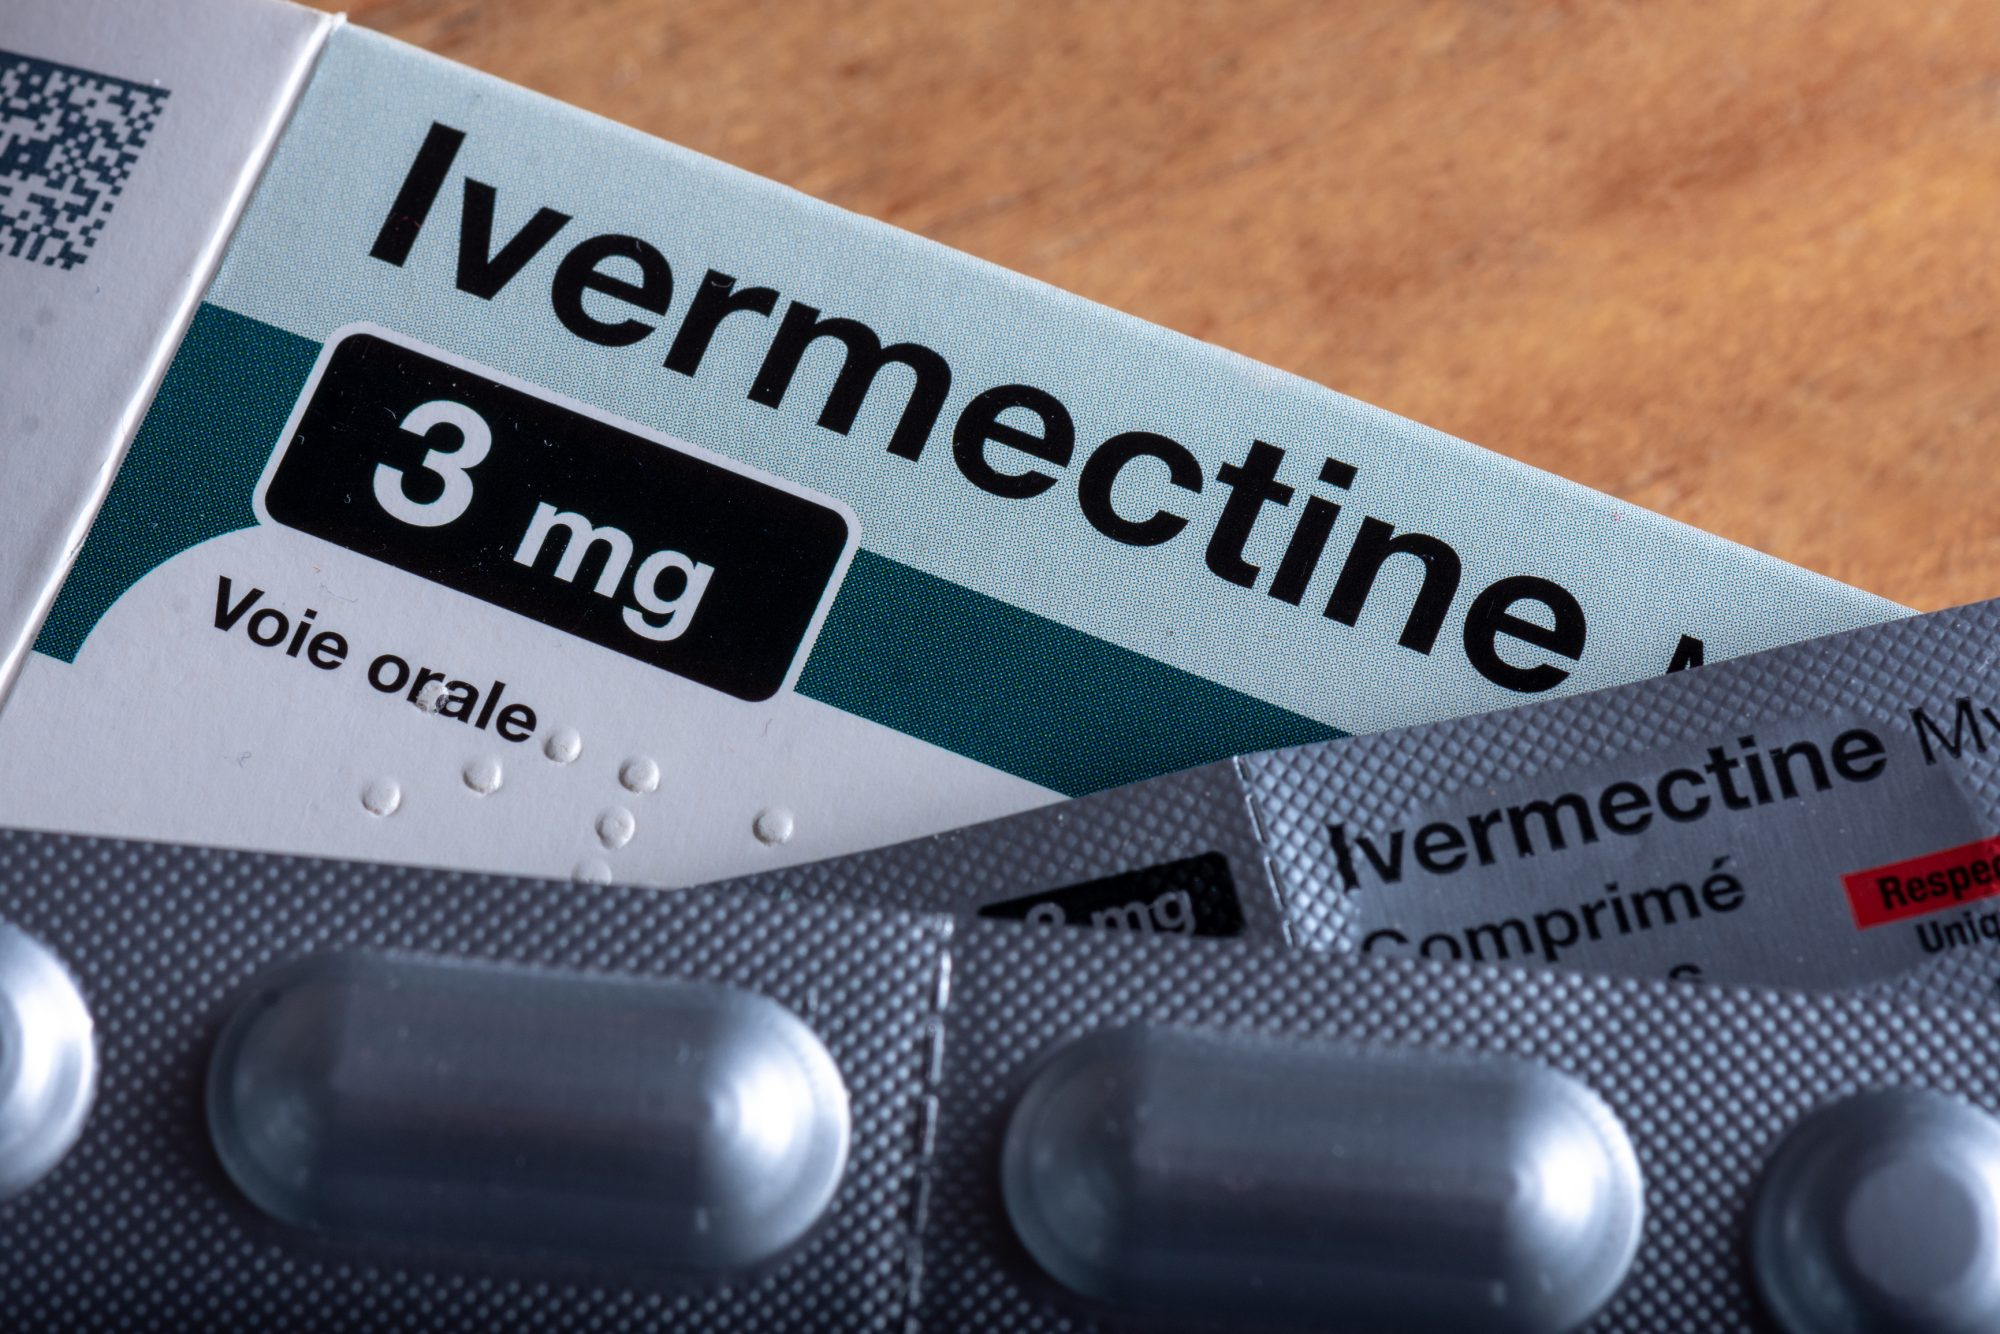 What is ivermectin for acne rosacea?